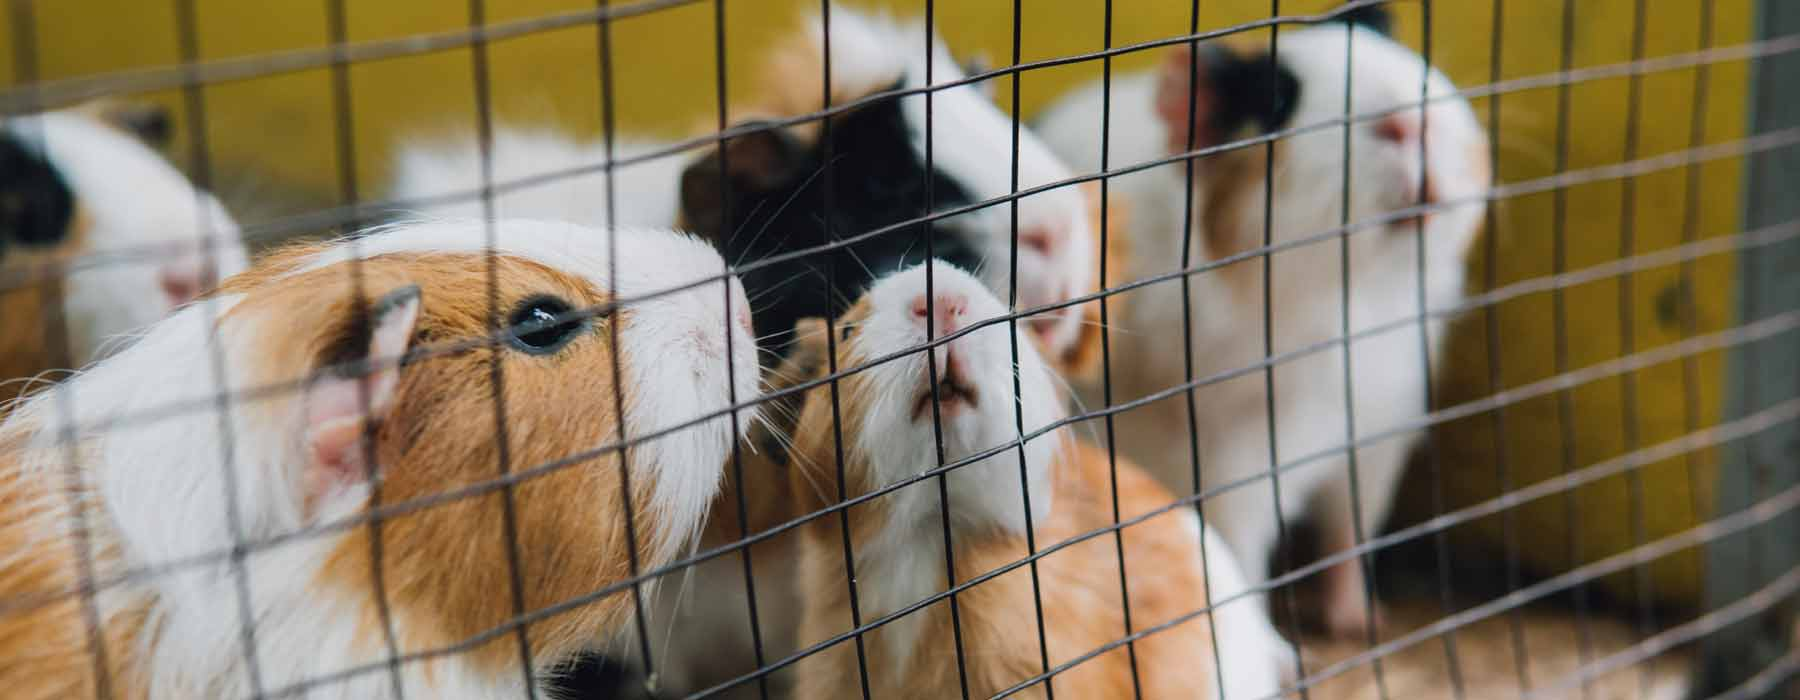 several guinea pigs in a cage